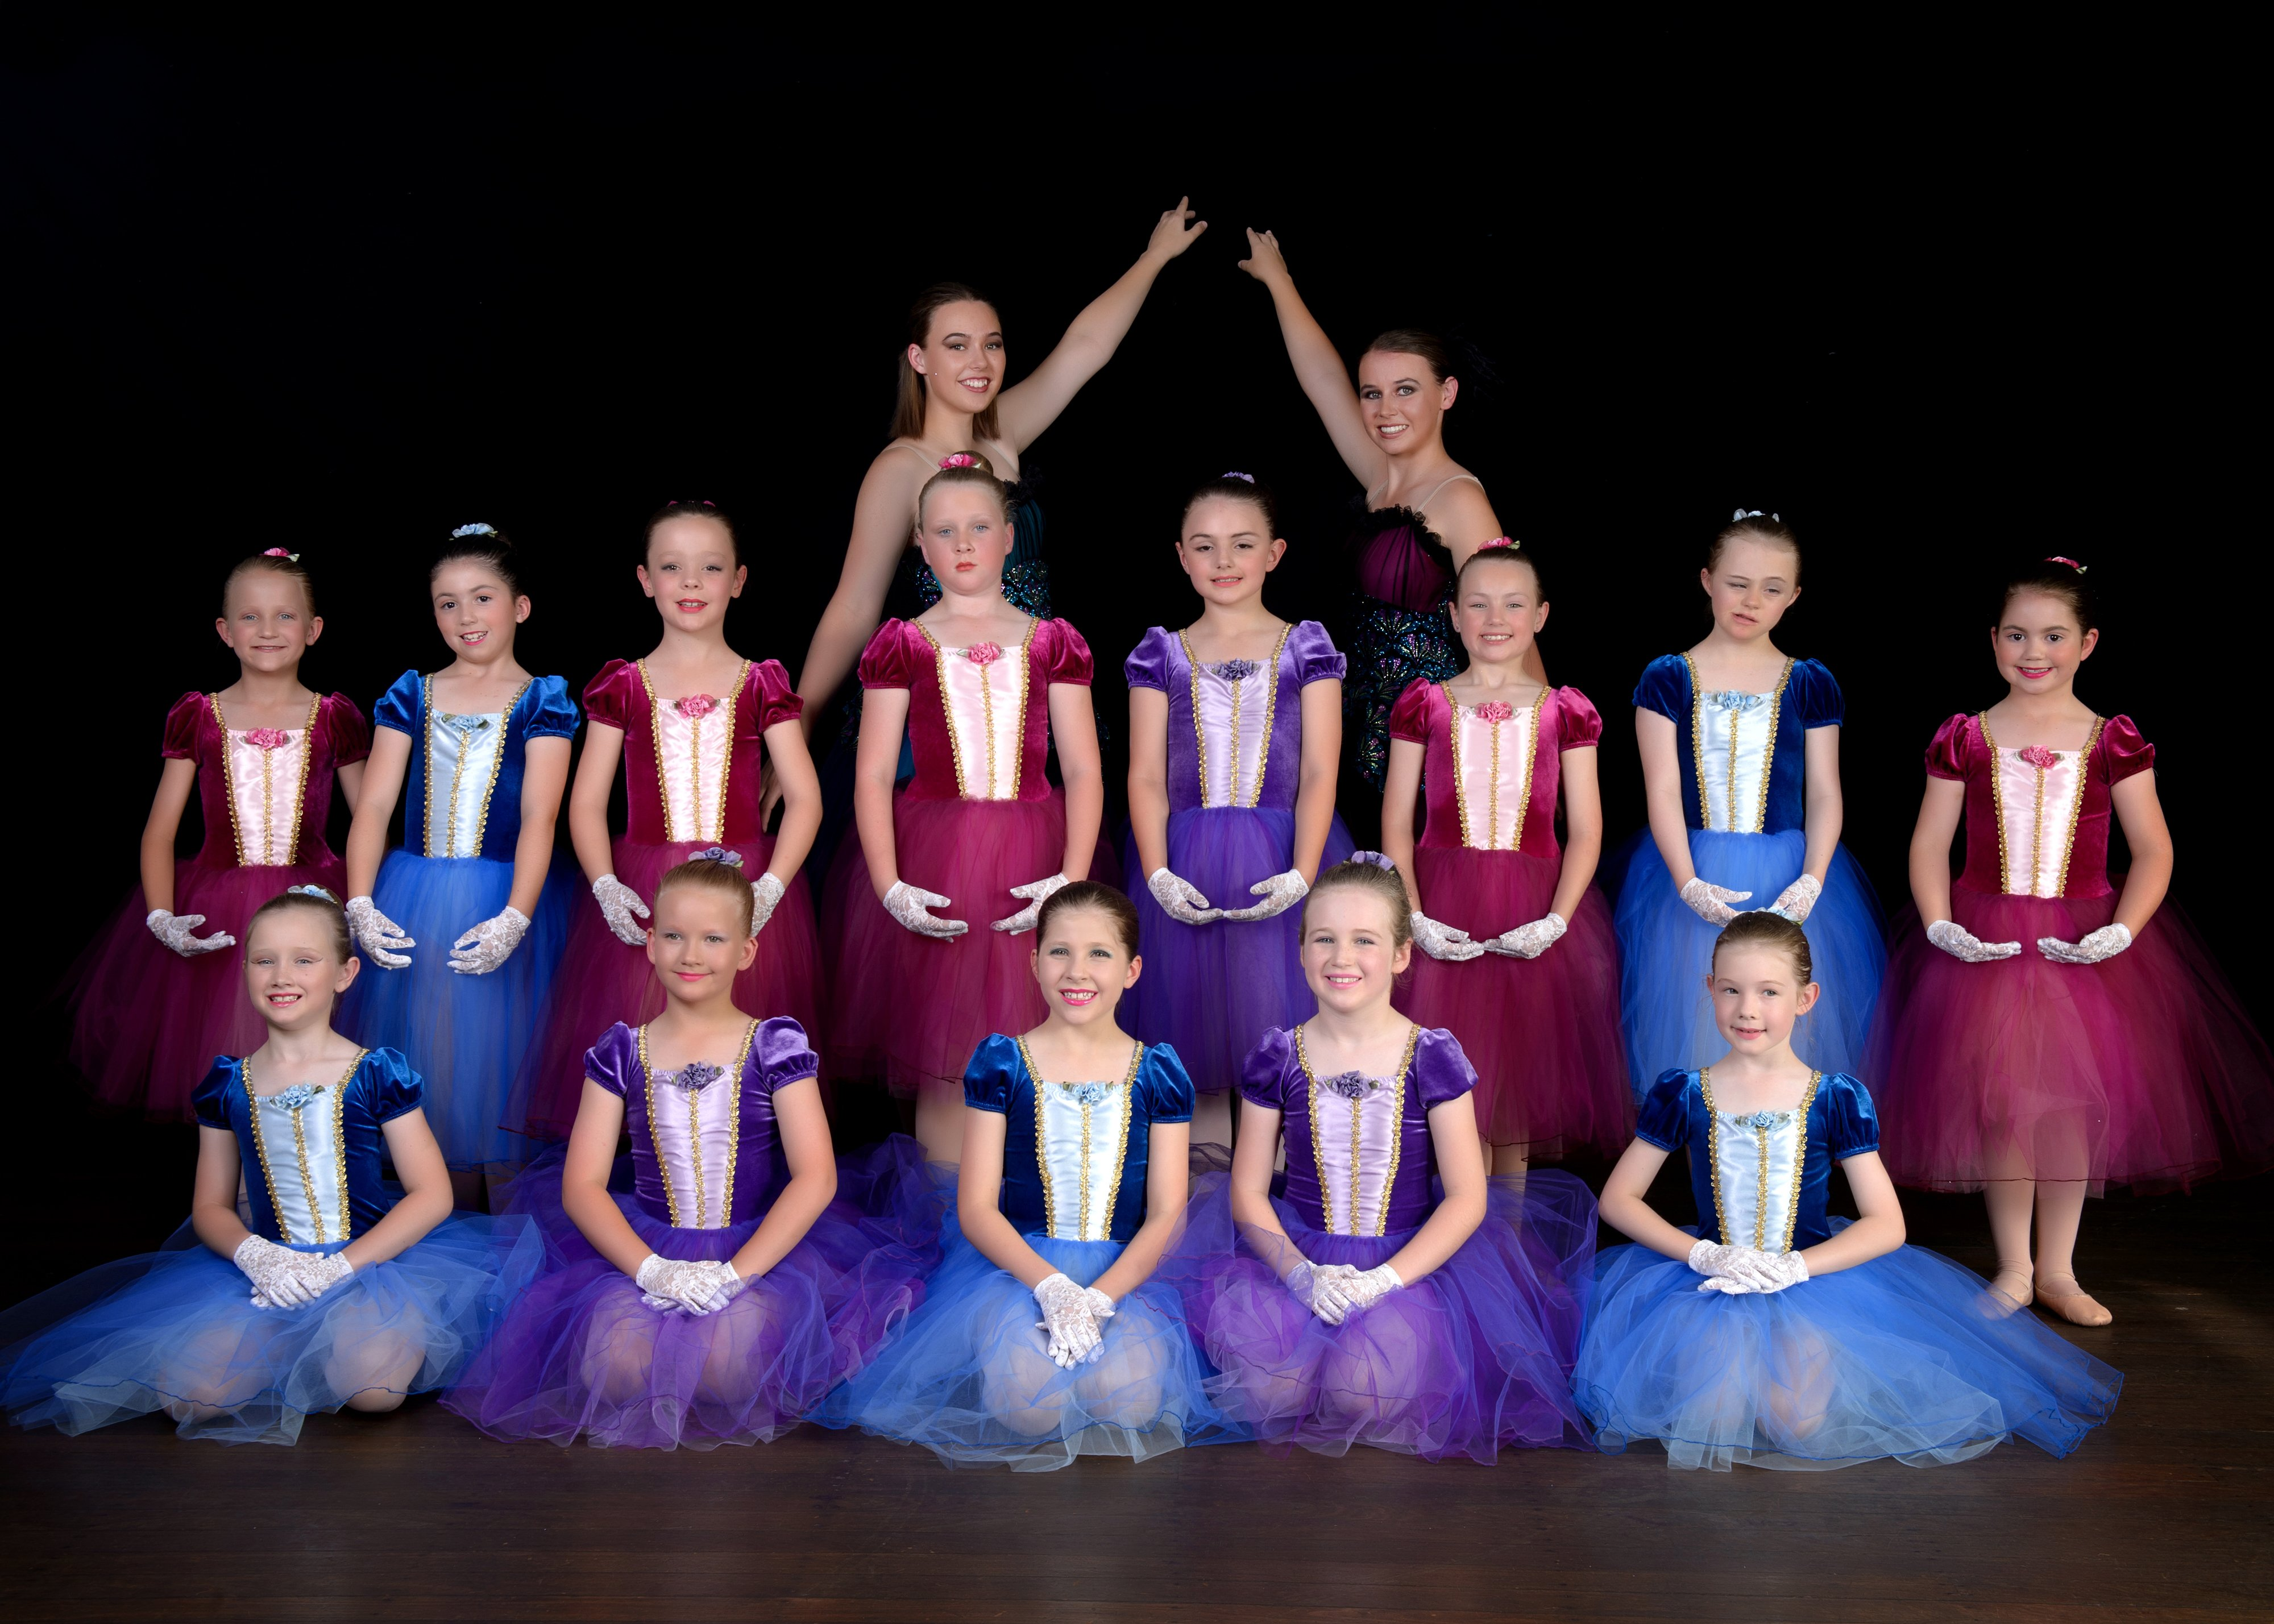 all ages - ballet dancers